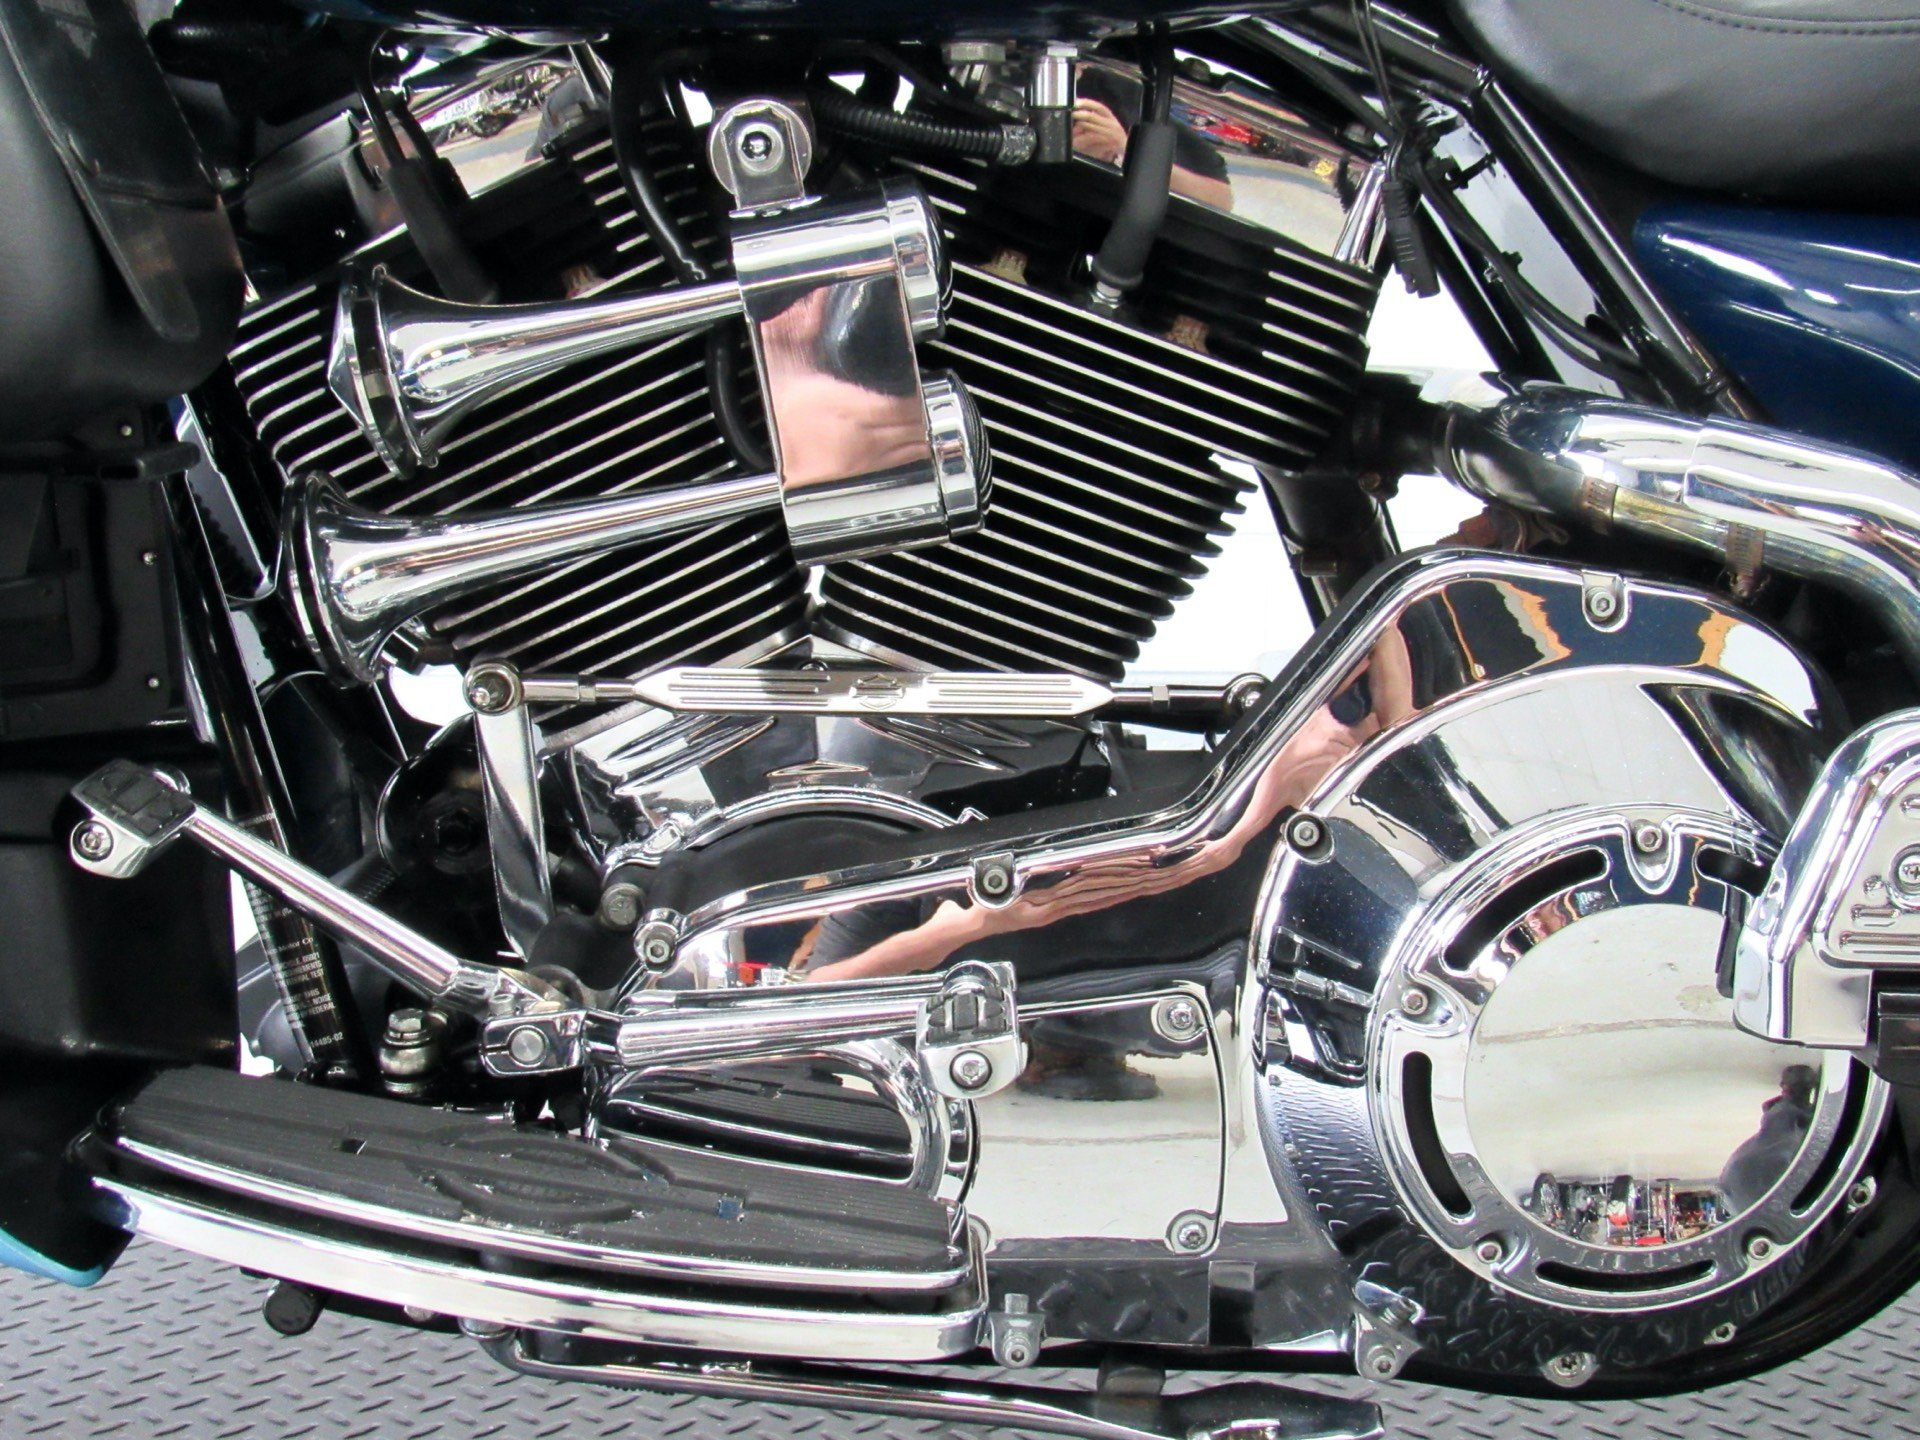 2002 Harley-Davidson FLHTCUI Ultra Classic® Electra Glide® in Fredericksburg, Virginia - Photo 19